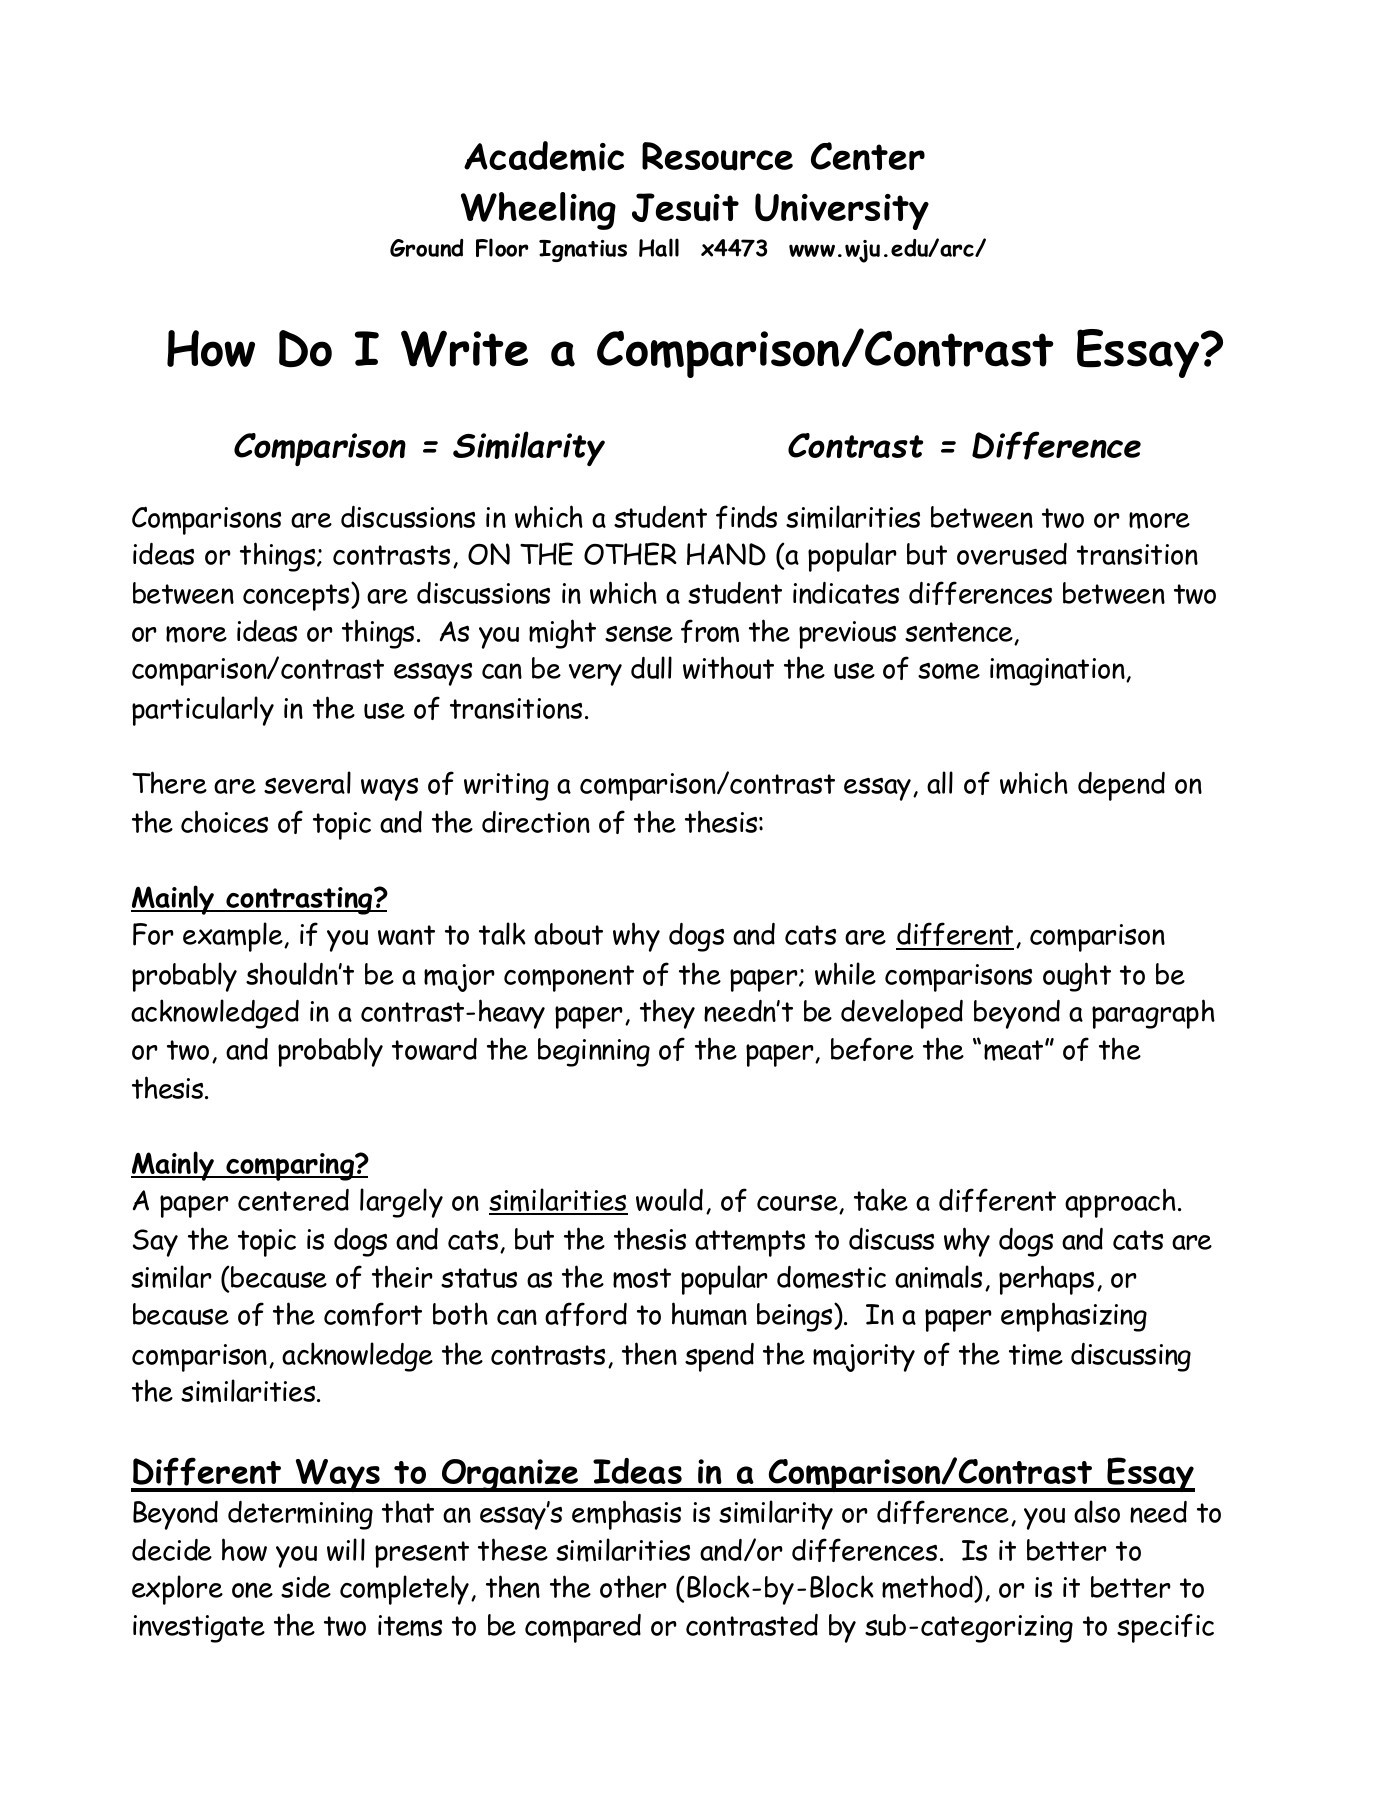 002 Essay Example Compare And Contrast Dog Excellent Cat Comparison Between Cats Dogs Pet Full